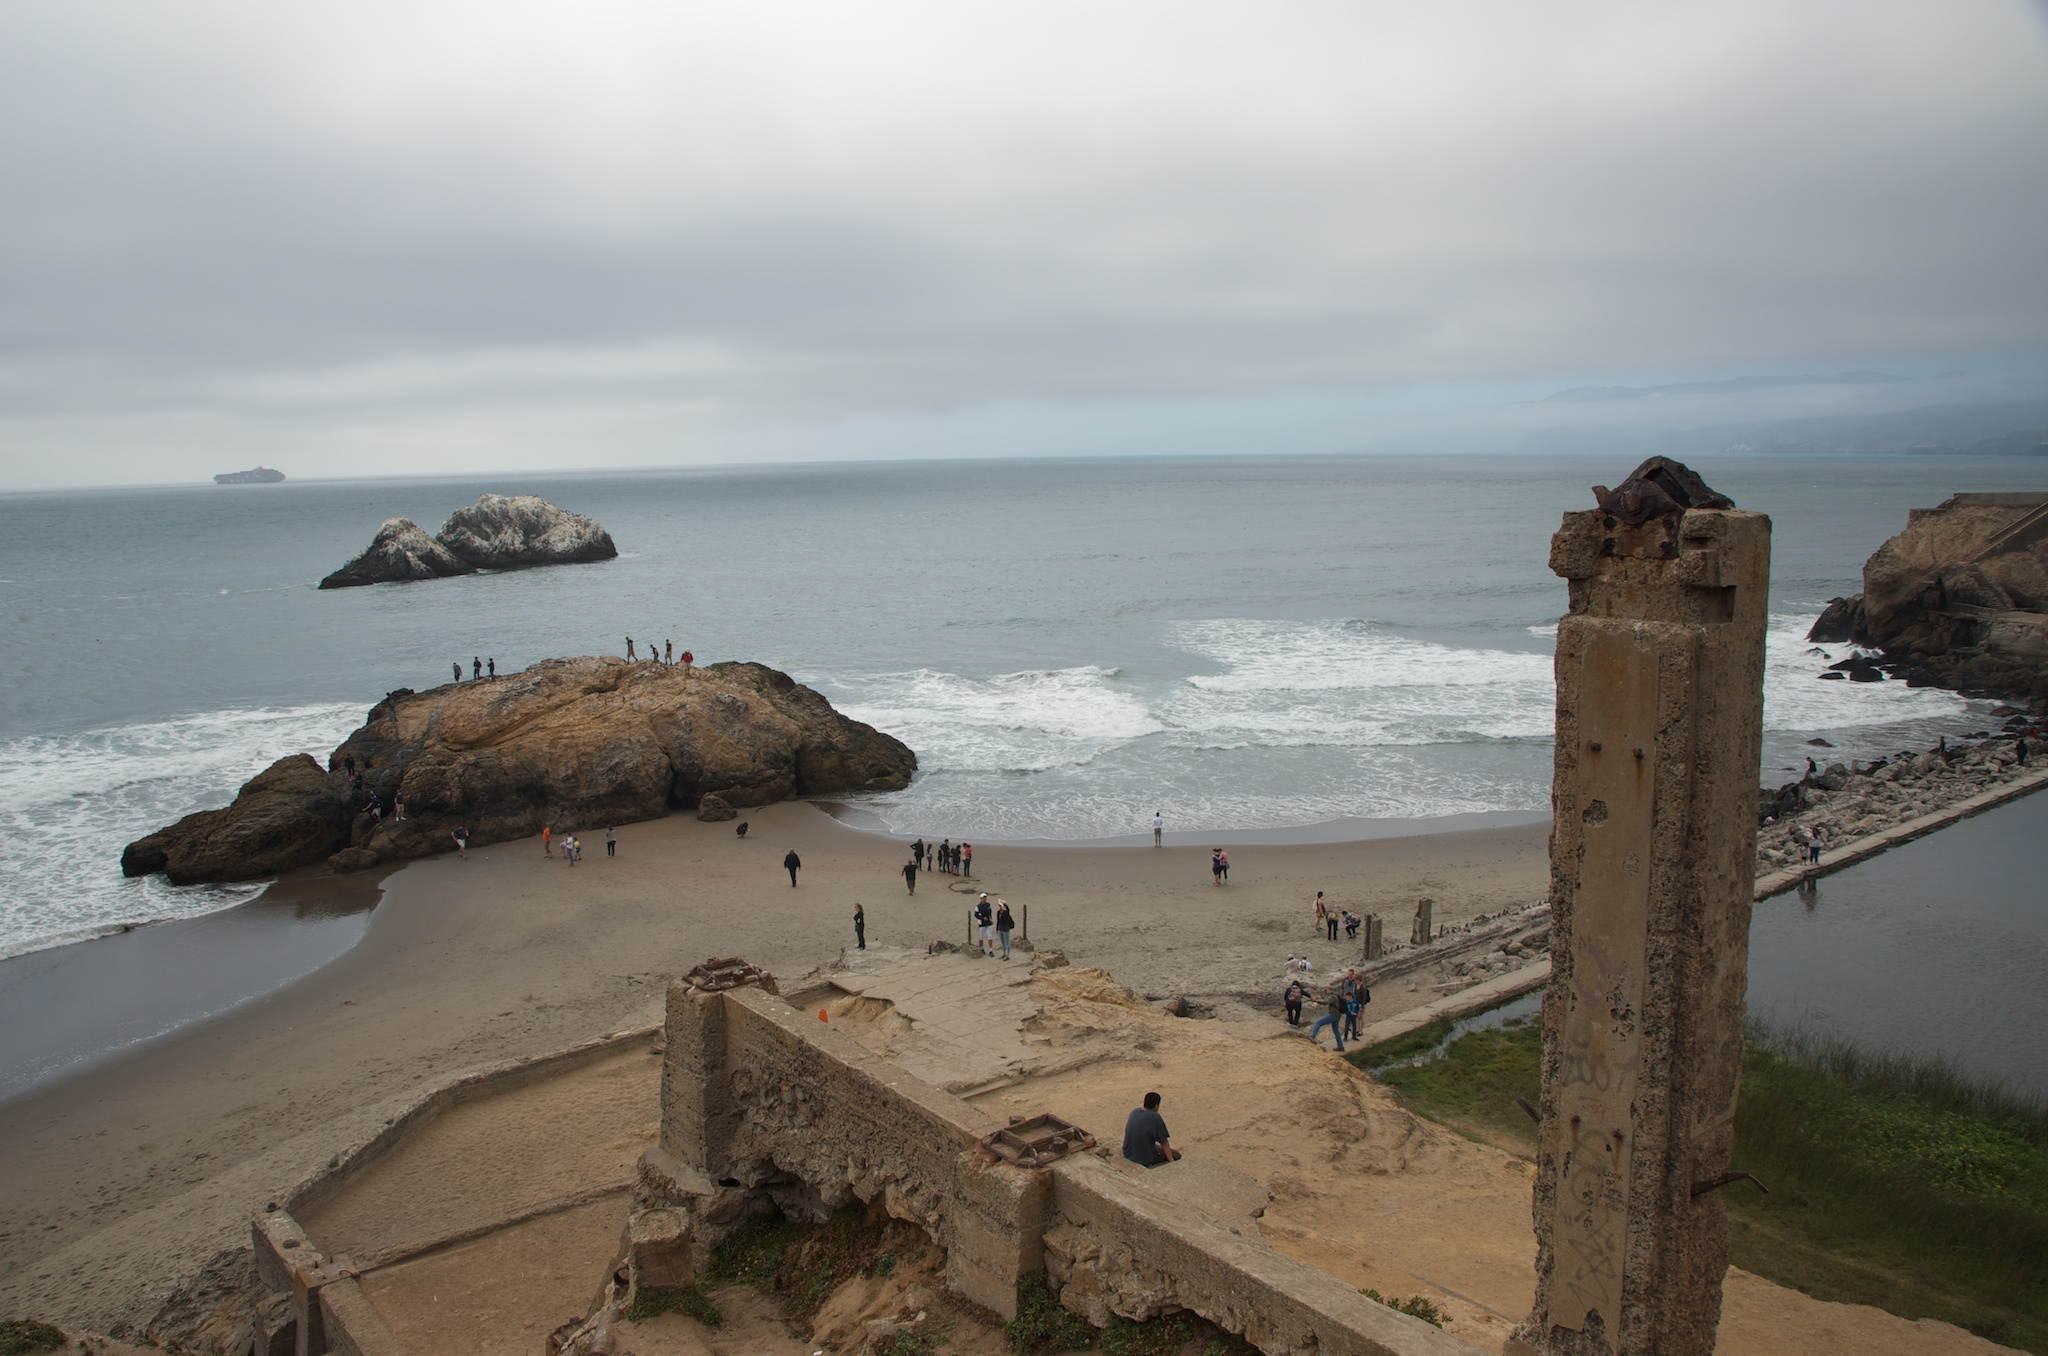 Sutro Baths, Out of camera